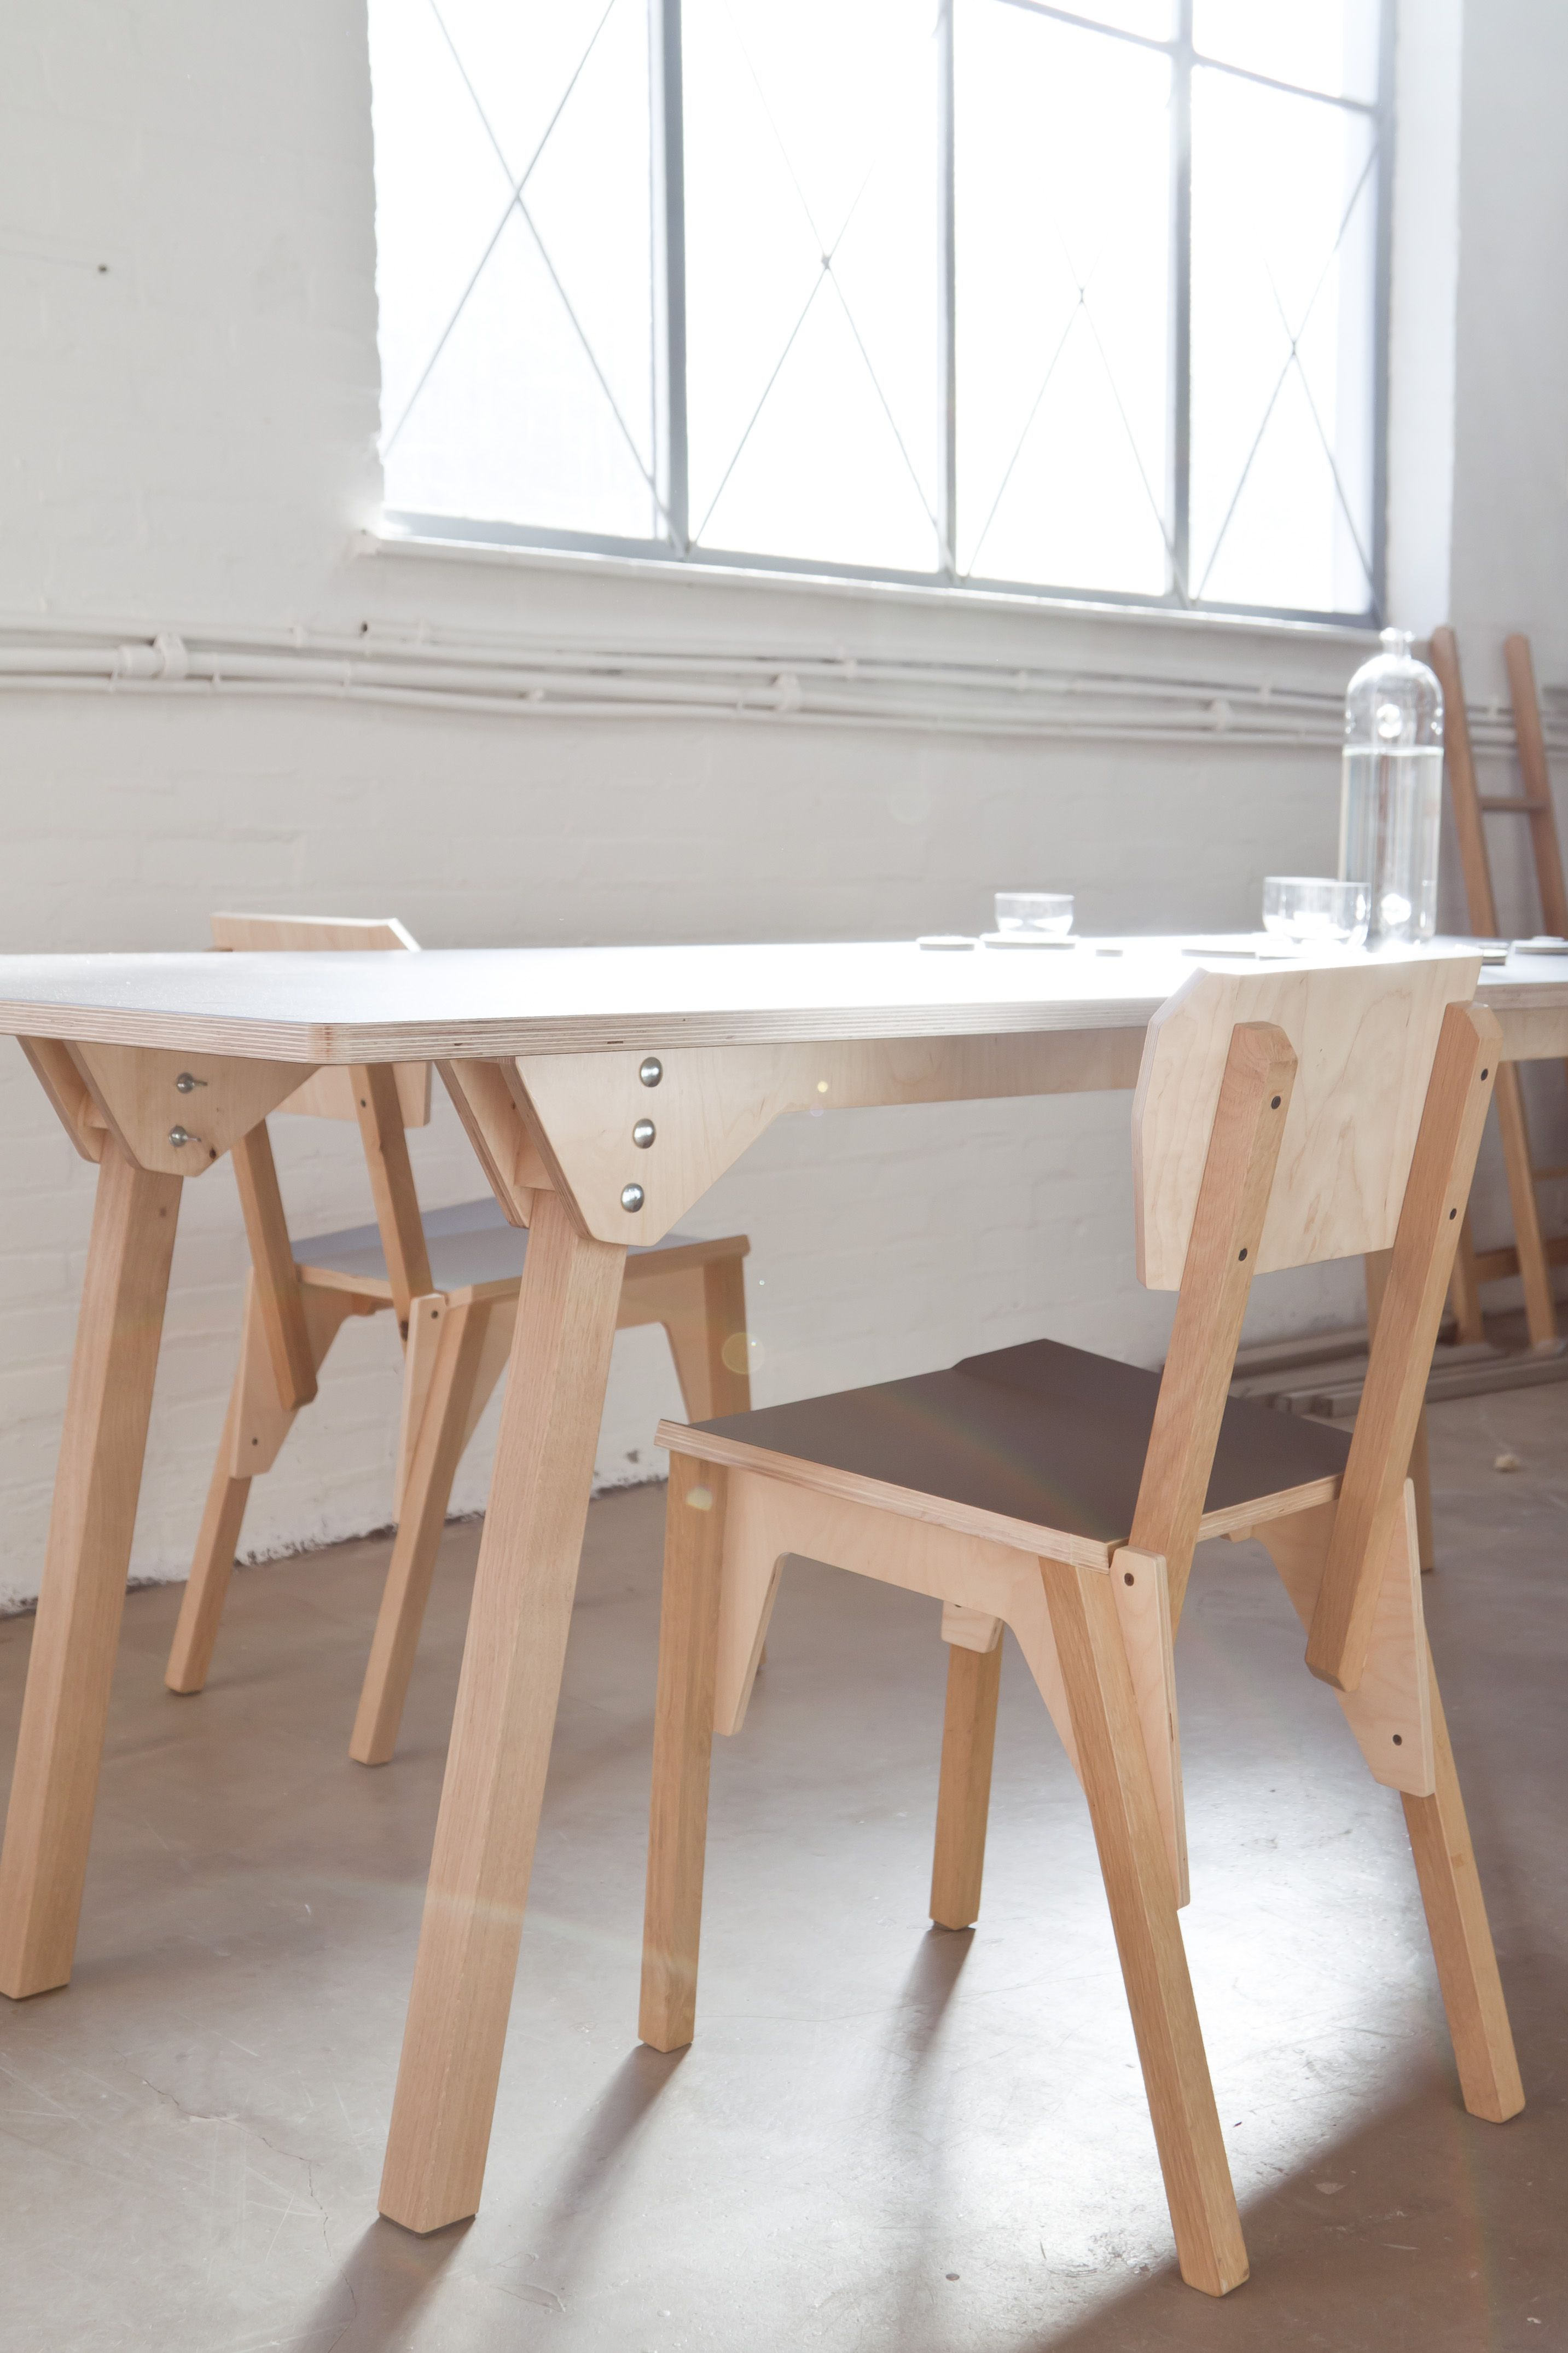 Diy plywood chair -  S Chair Jeroen Wand Together With Vij5 Oak With Plywood Elements With